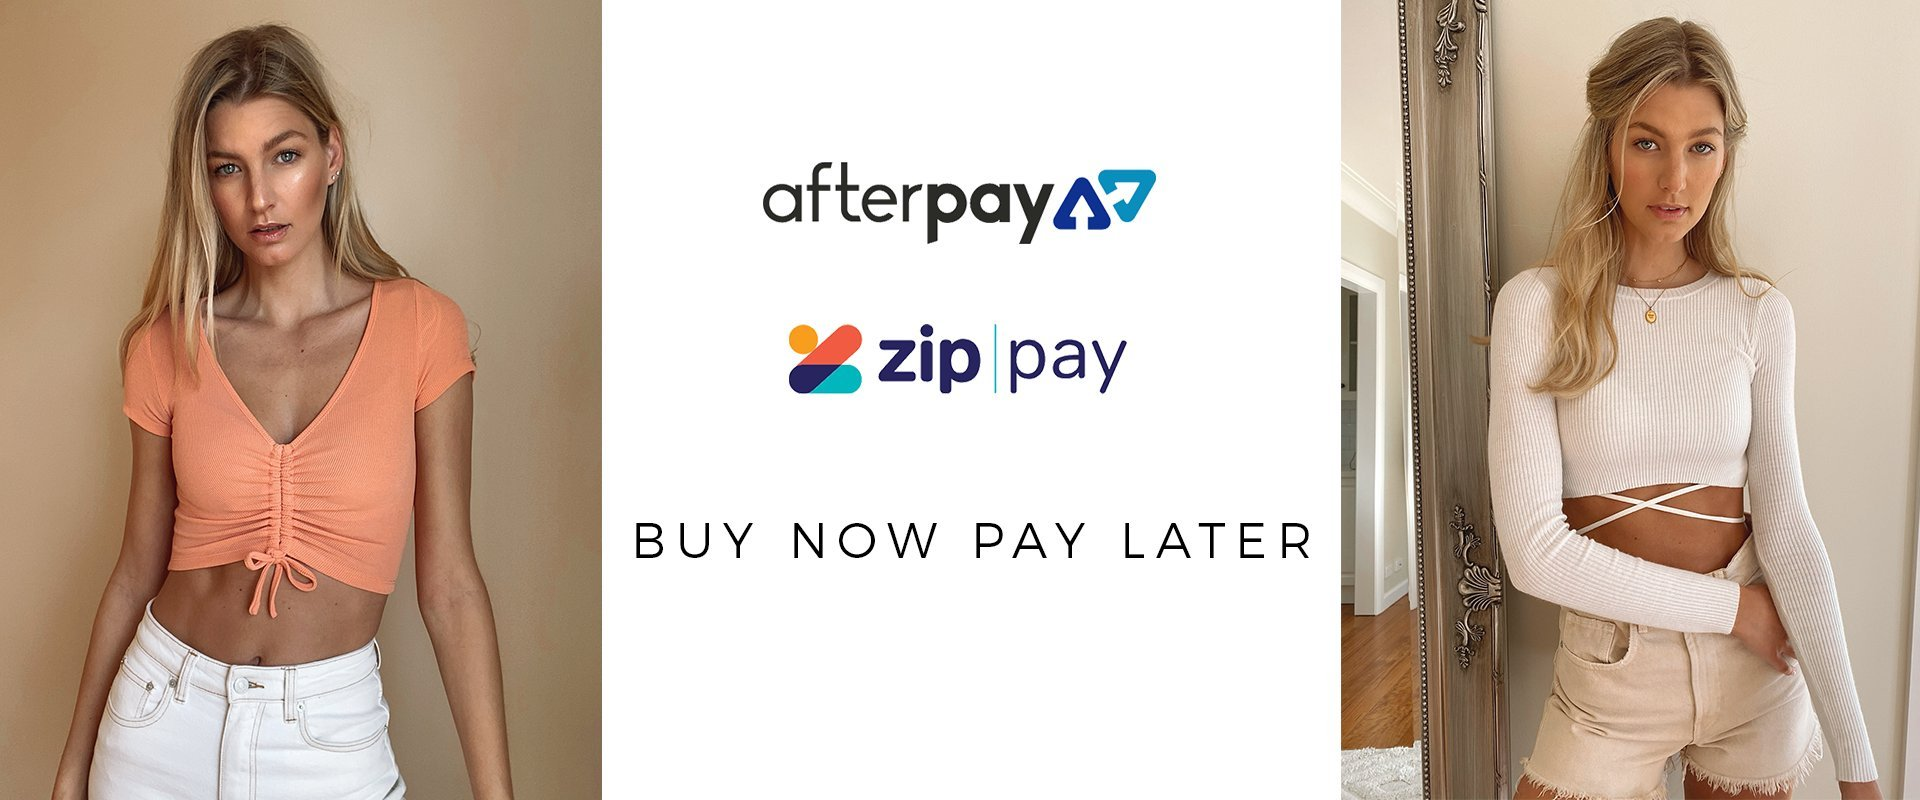 BUY NOW, PAY LATER!